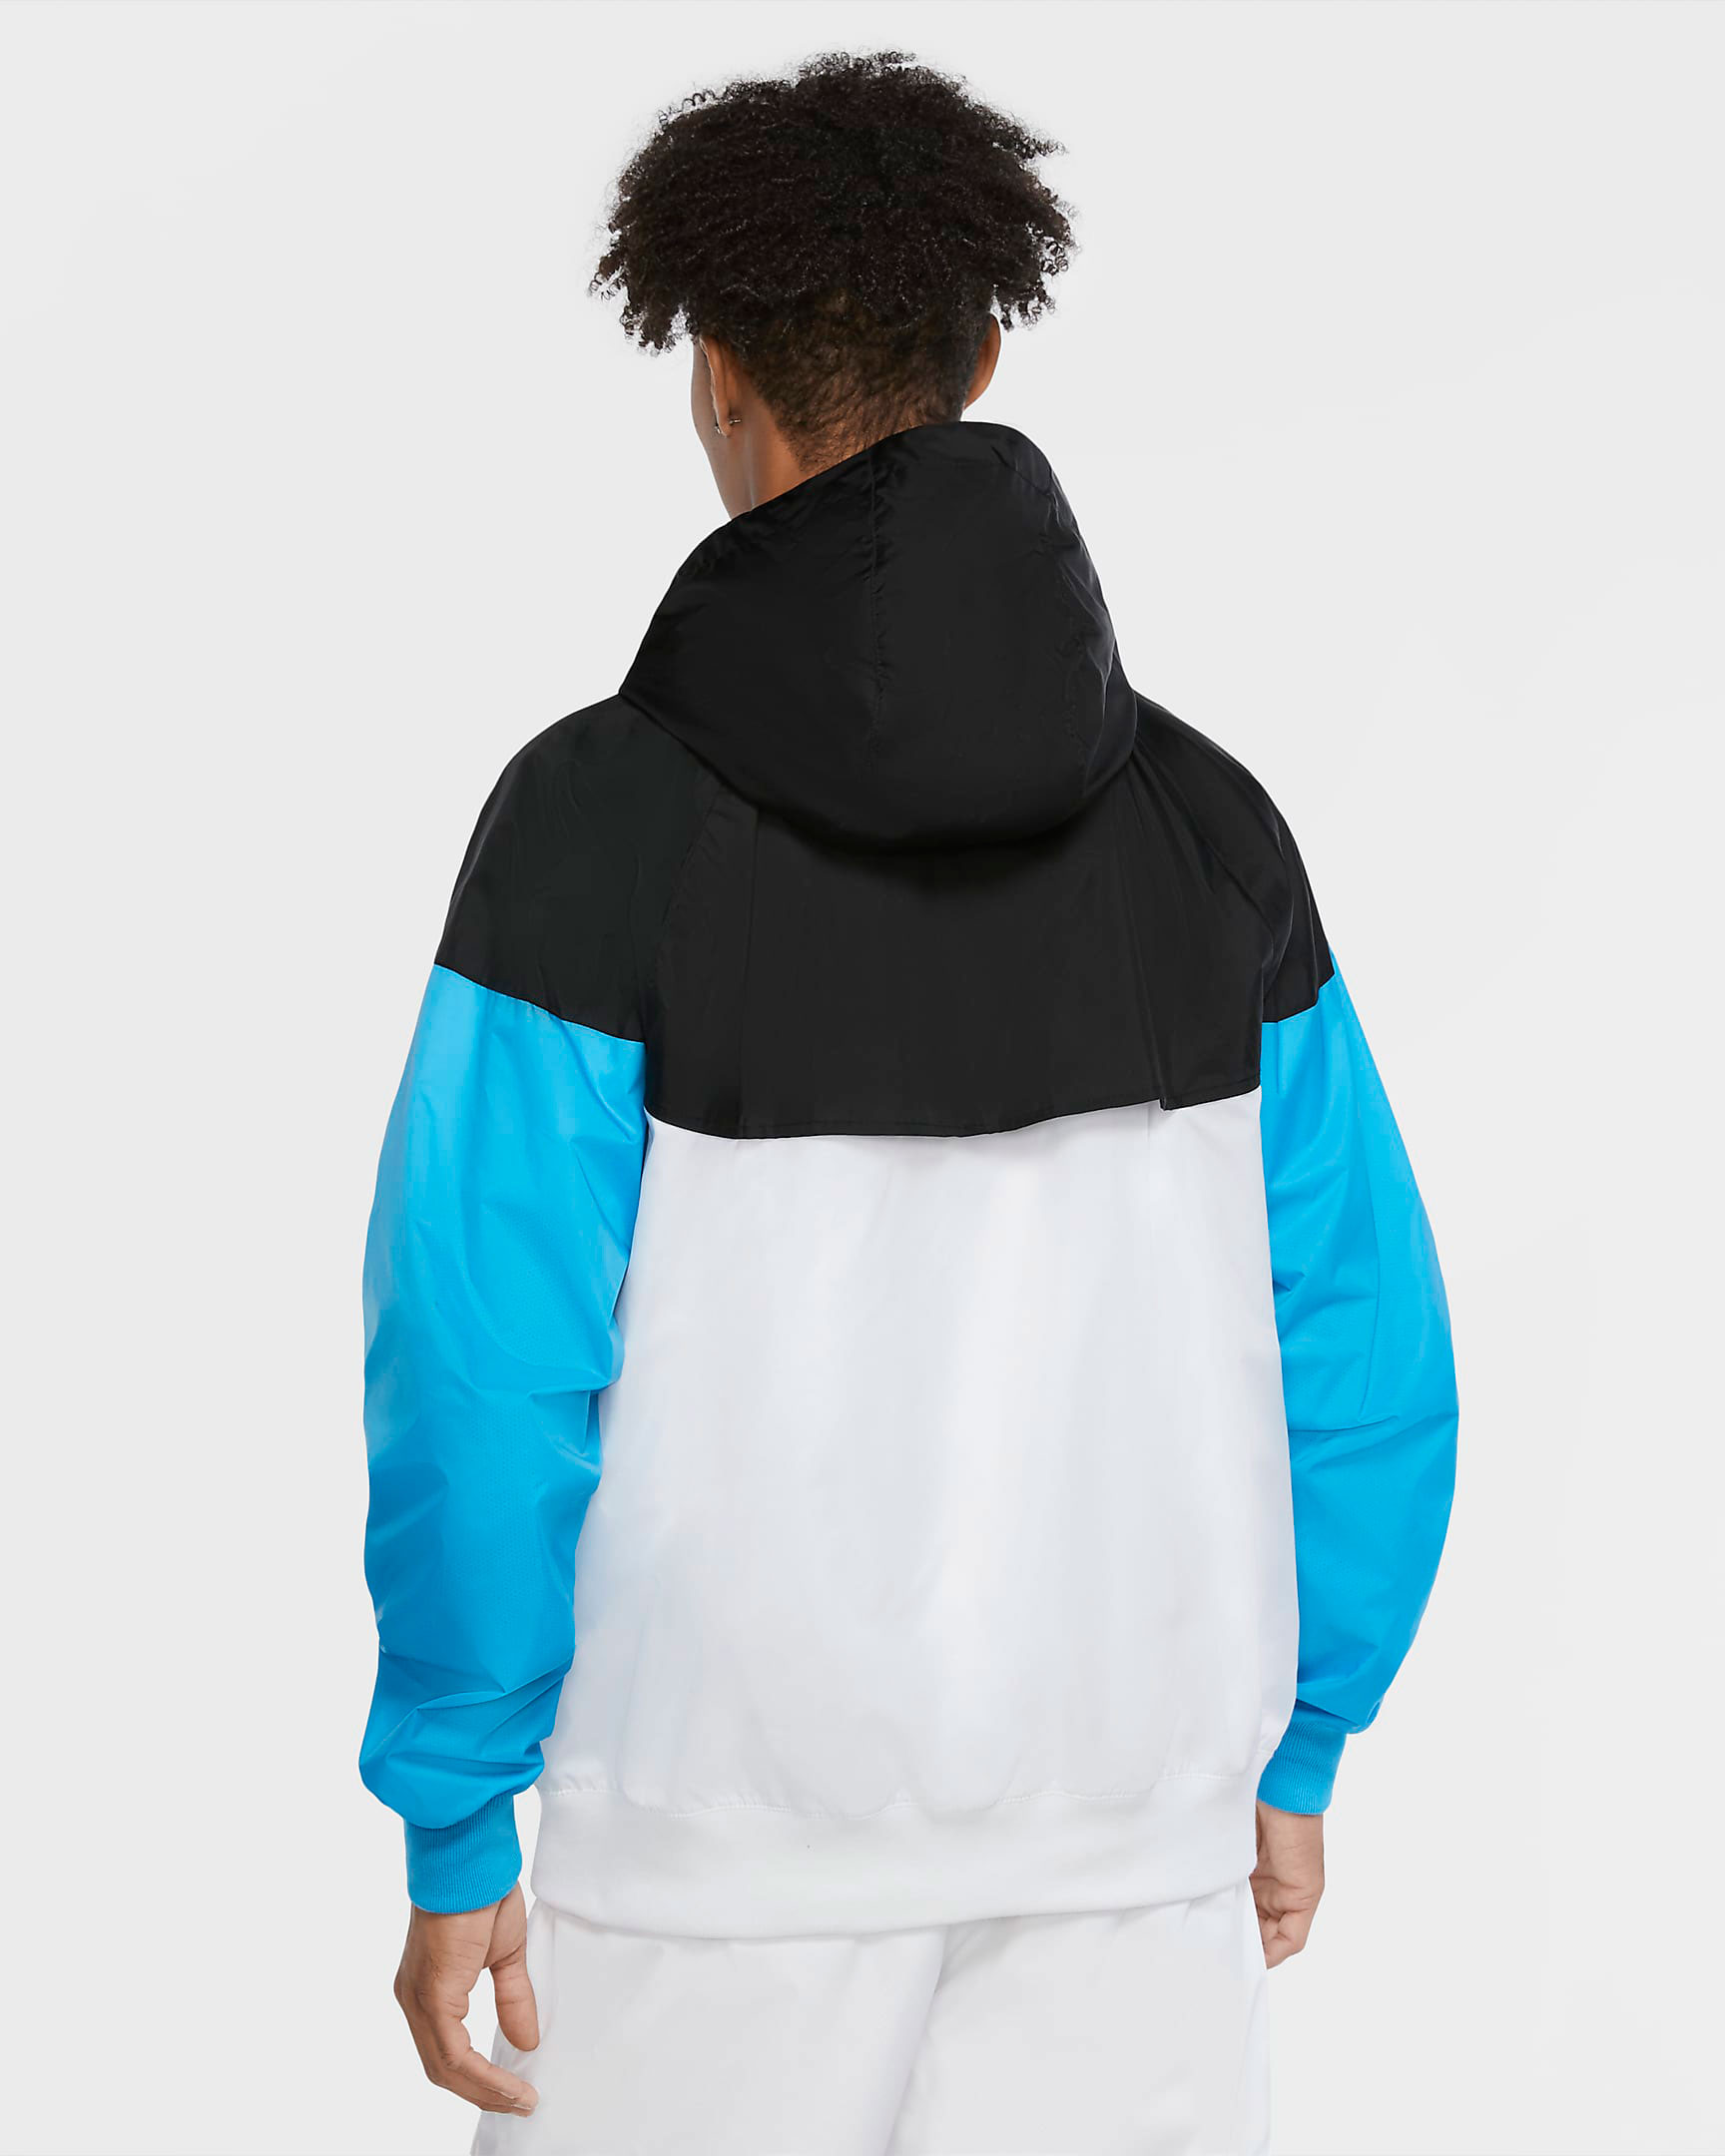 nike-laser-blue-windrunner-jacket-2